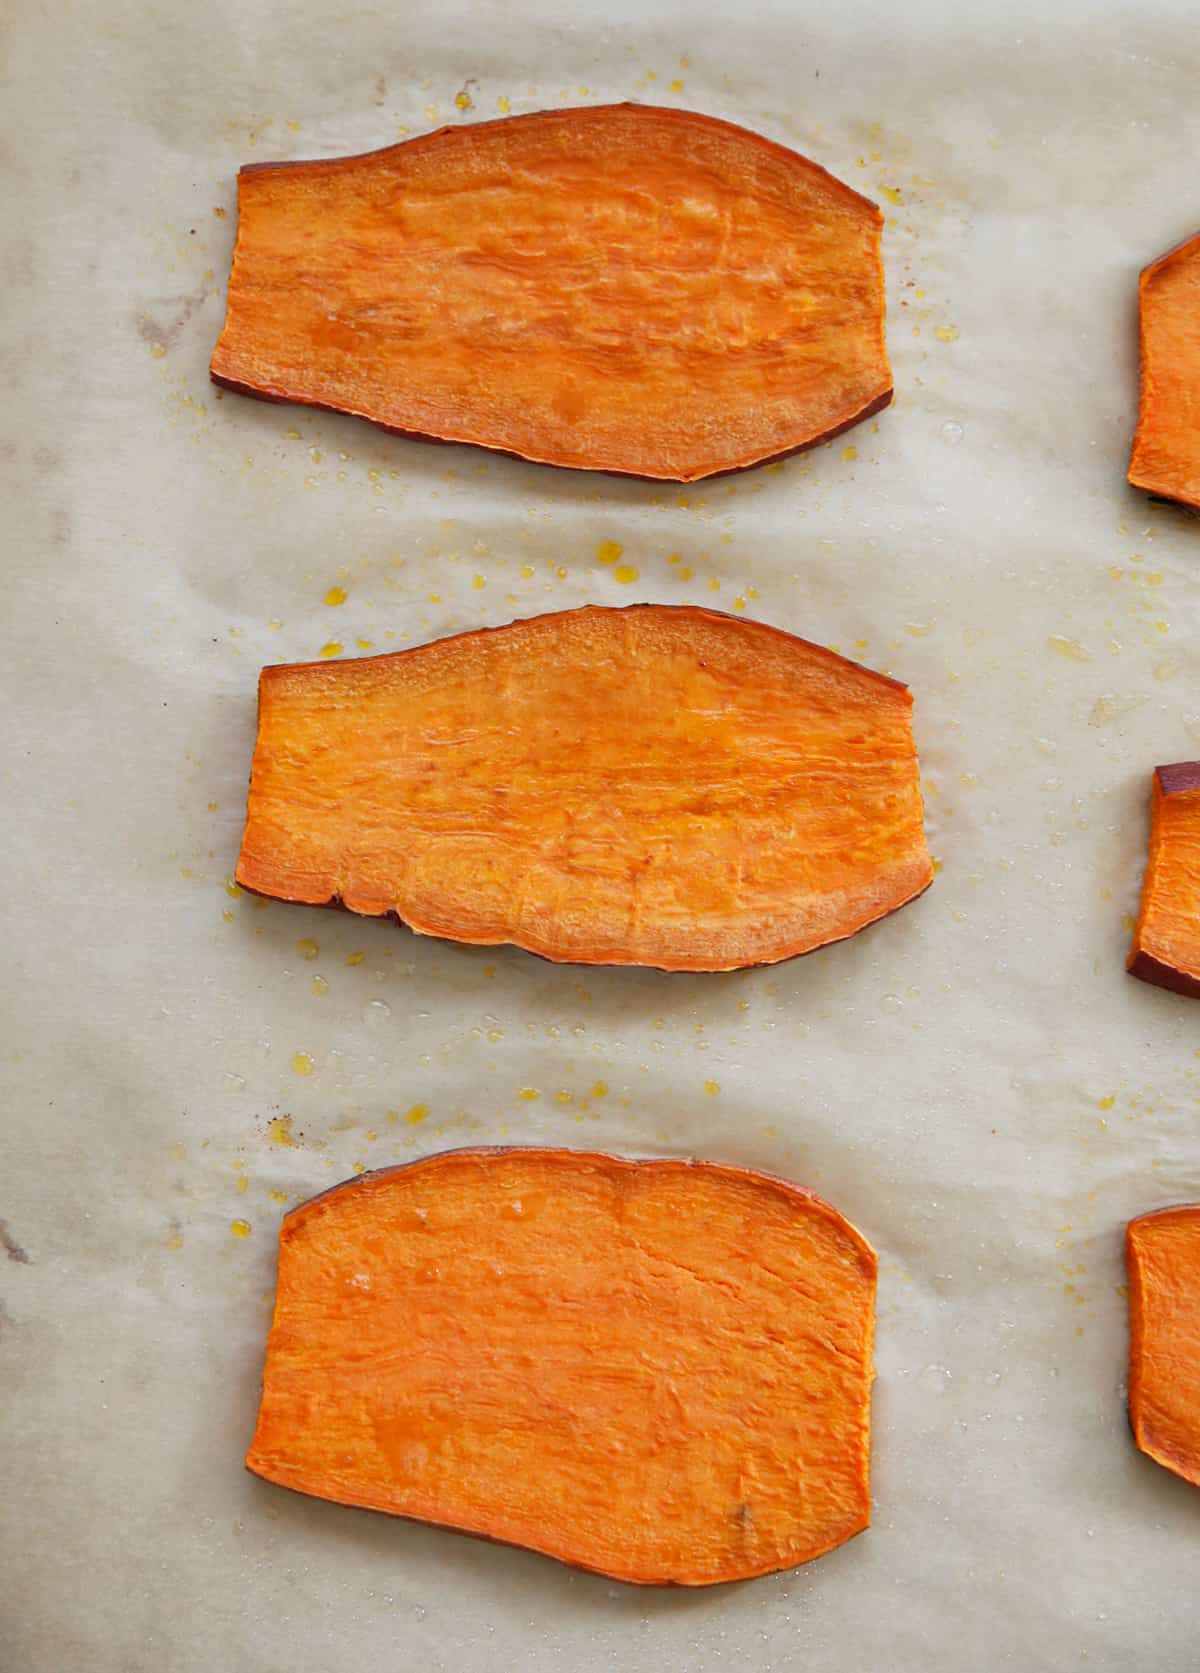 Is sweet potato toast better than bread?